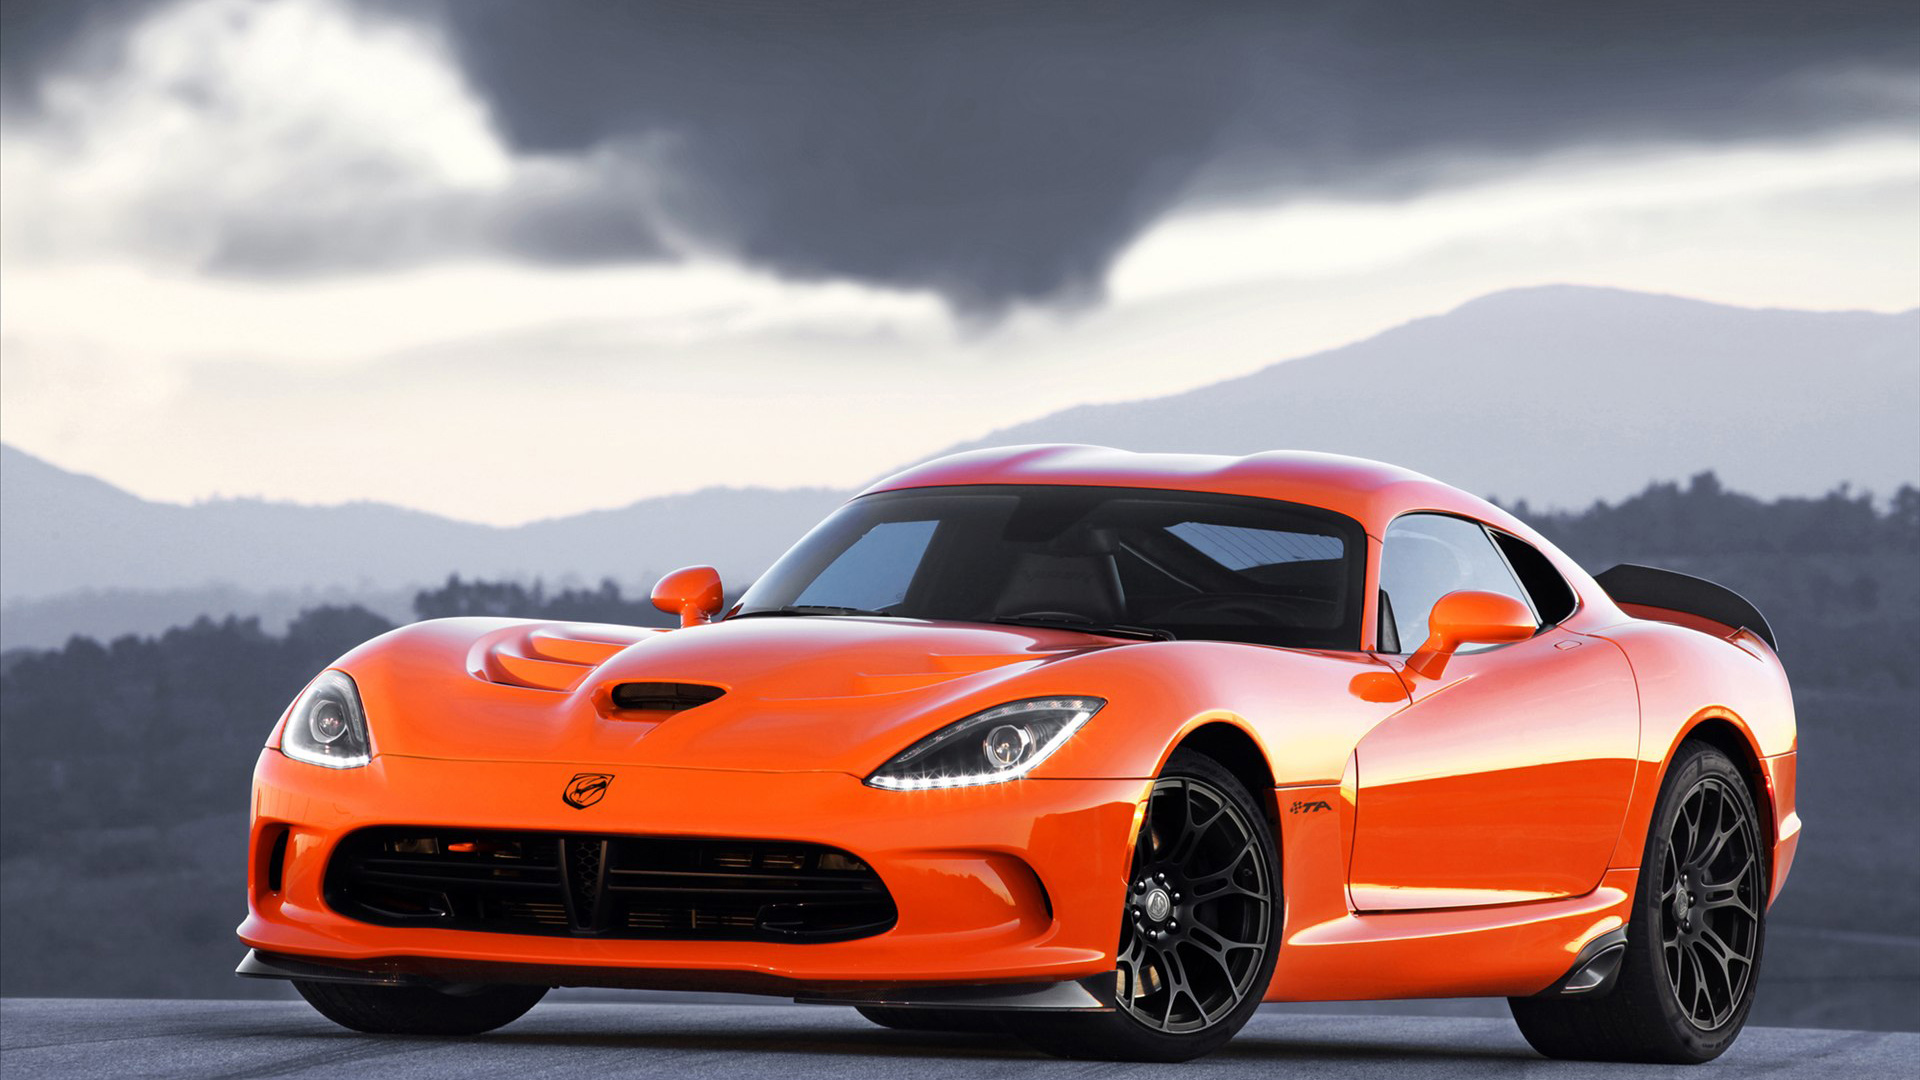 2014 Dodge Srt Viper Ta Wallpaper Hd Car Wallpapers